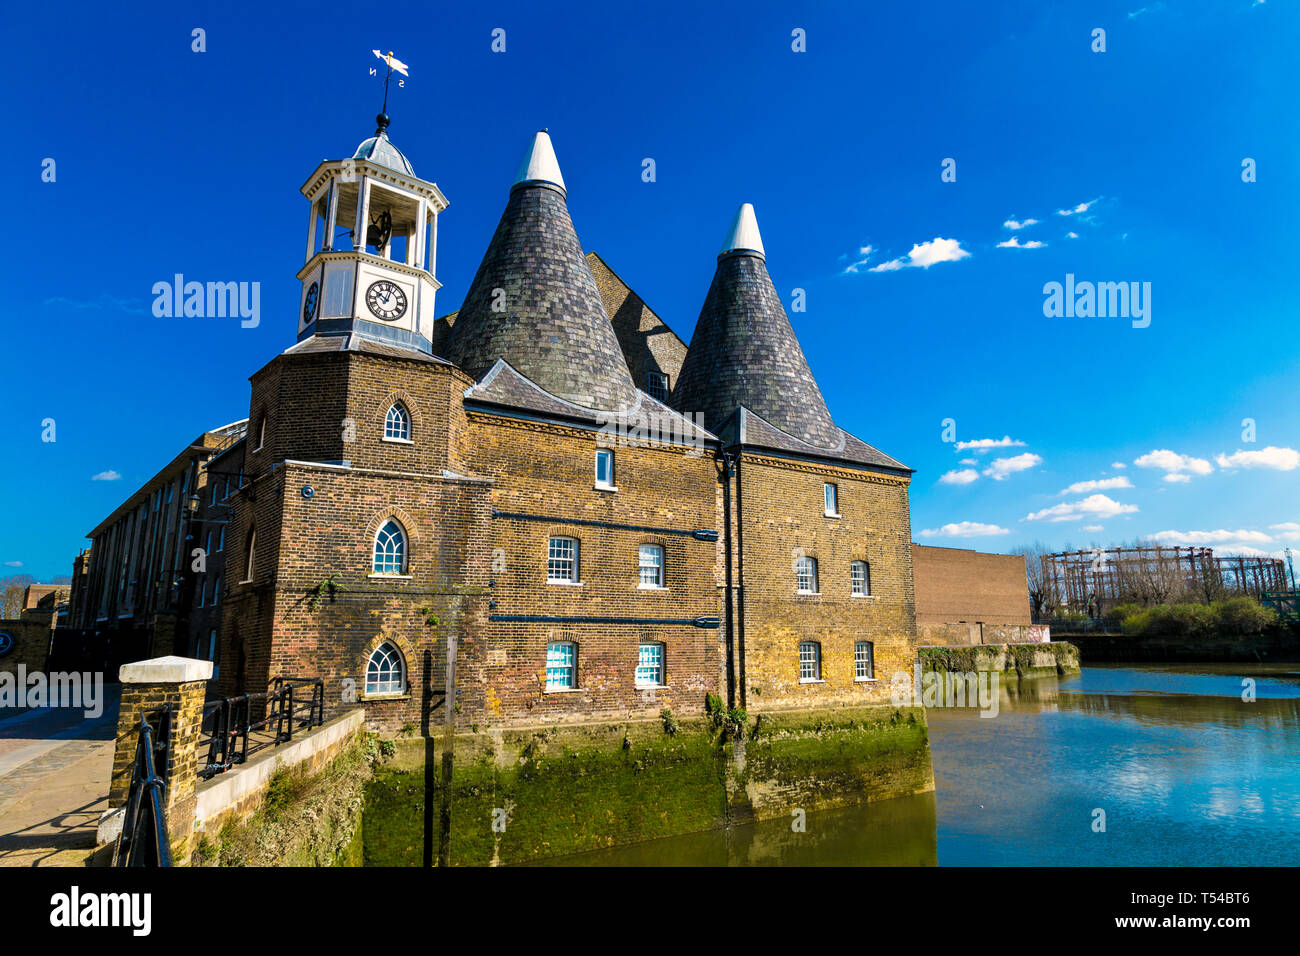 Three Mills (Clock Mill) in Bow, London, UK - Stock Image